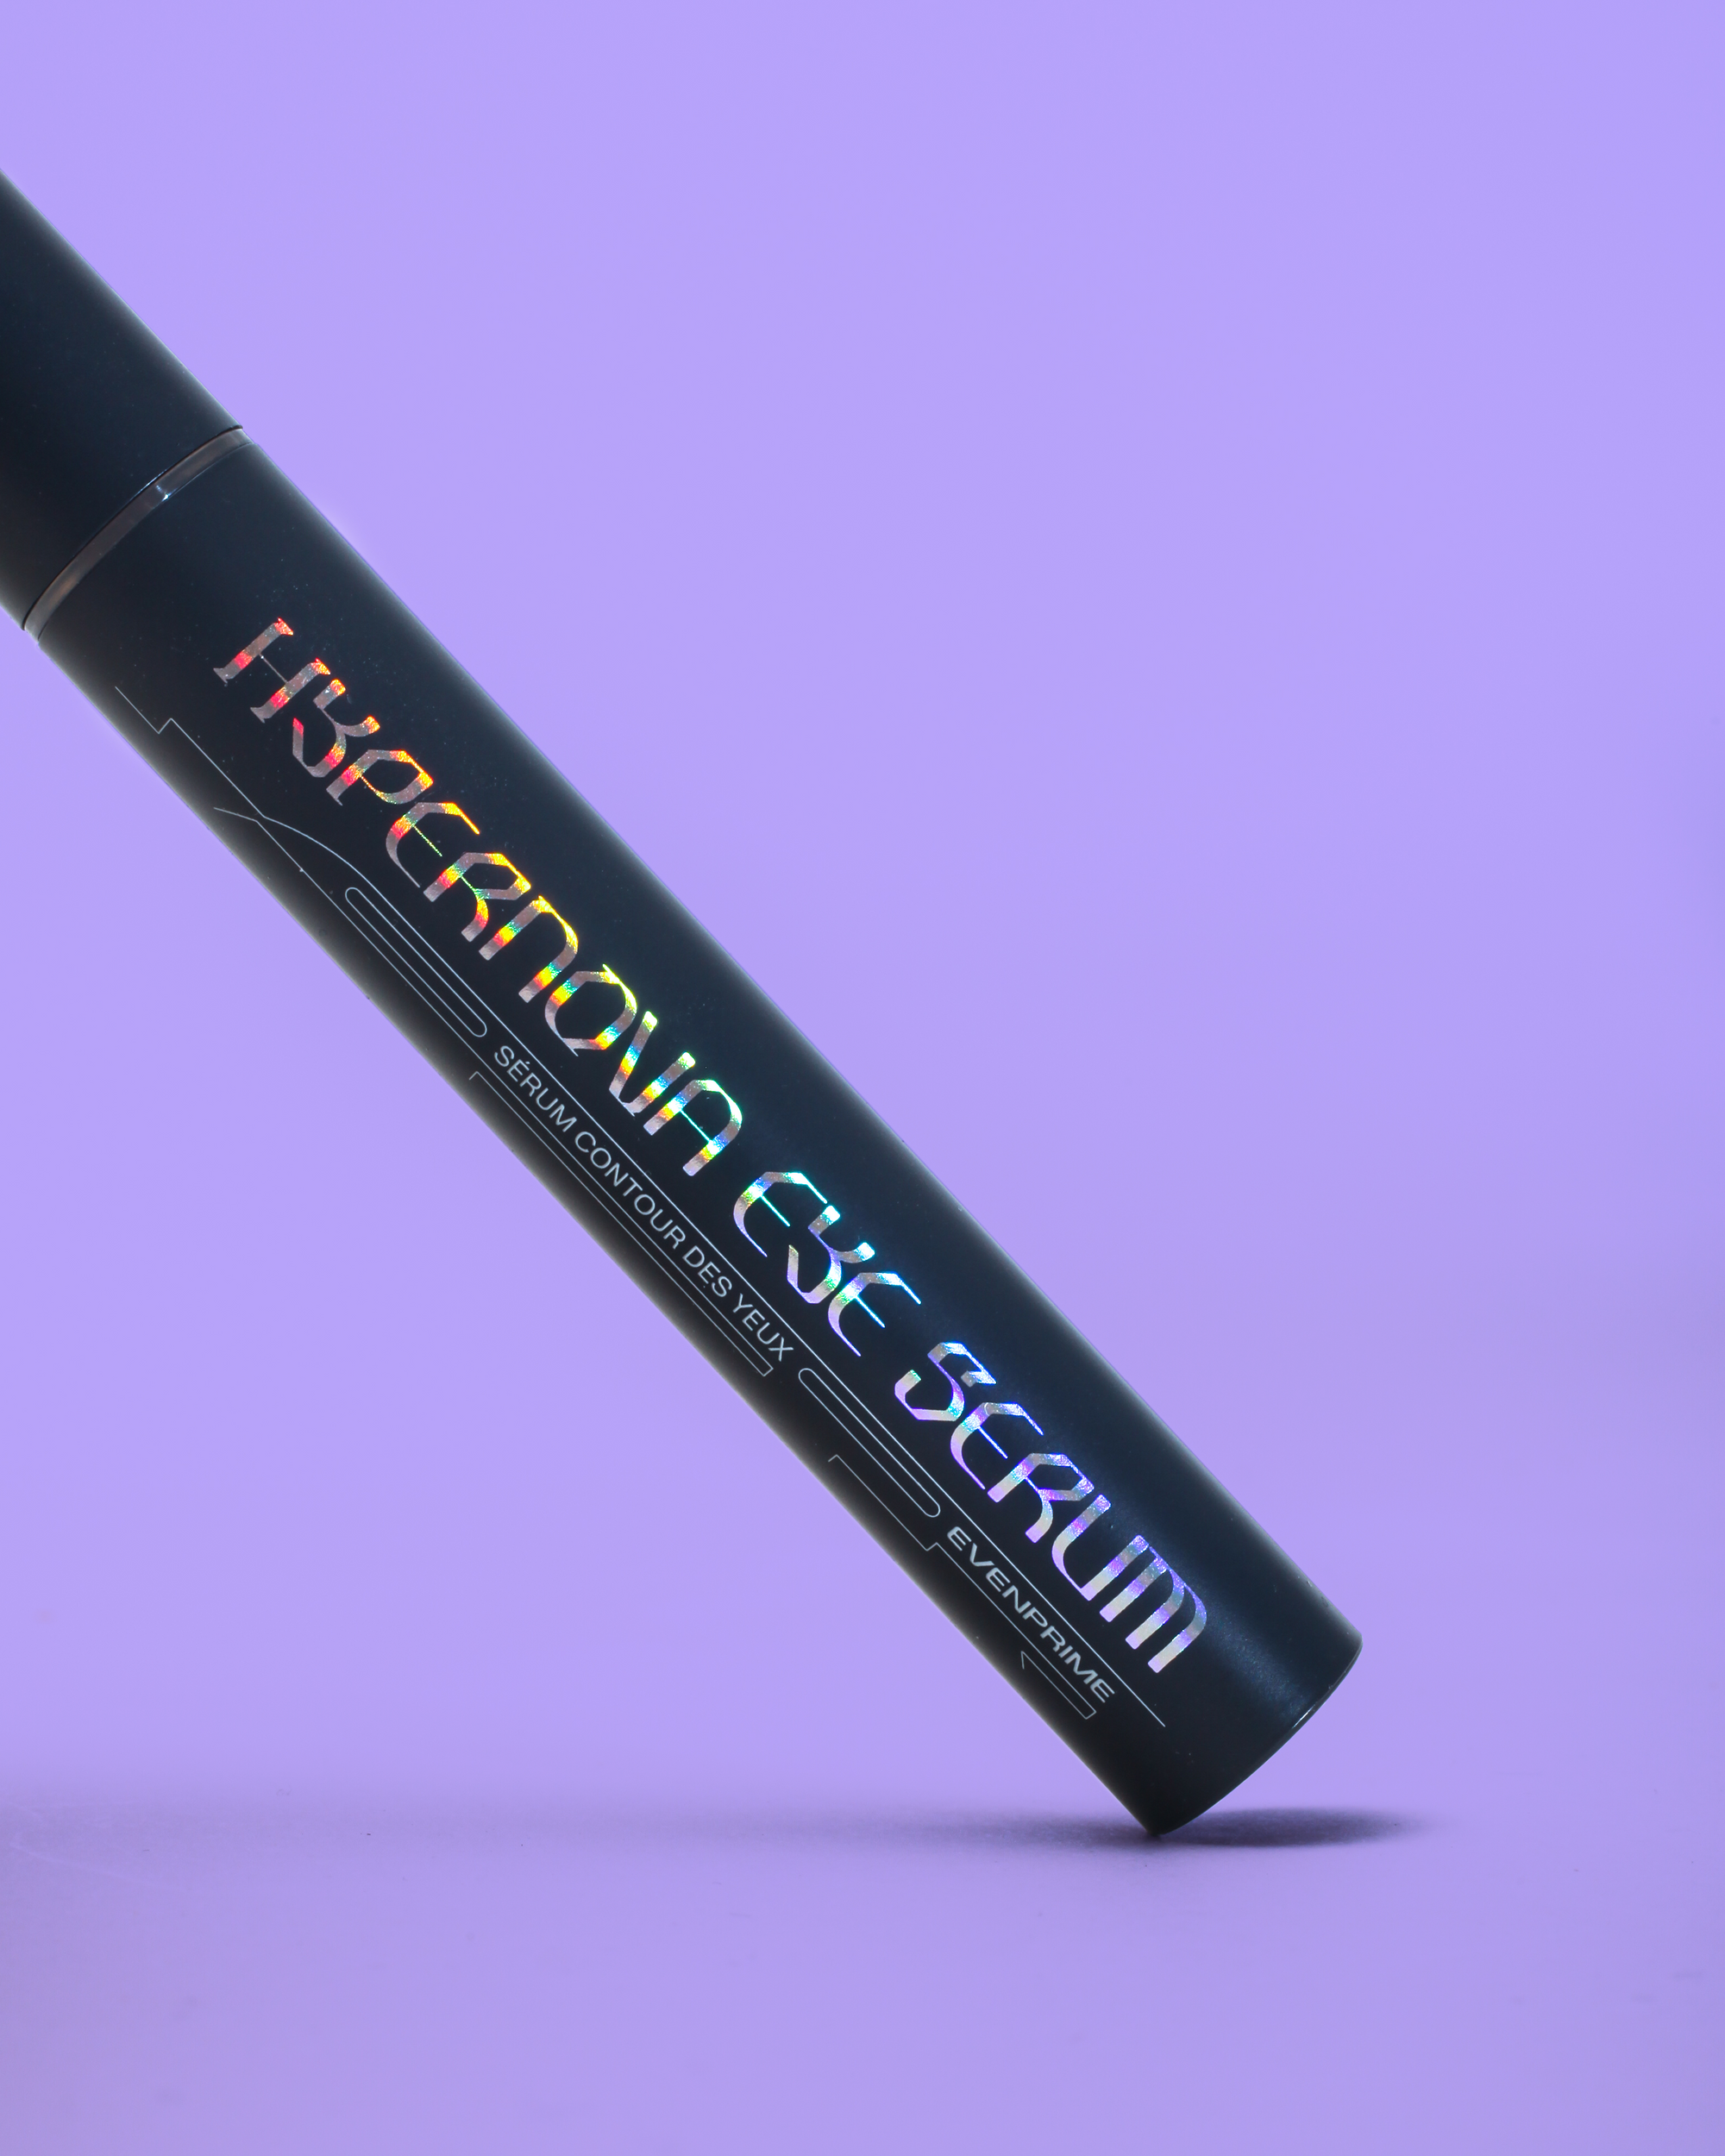 New Product Alert: Hypernova Eye Serum